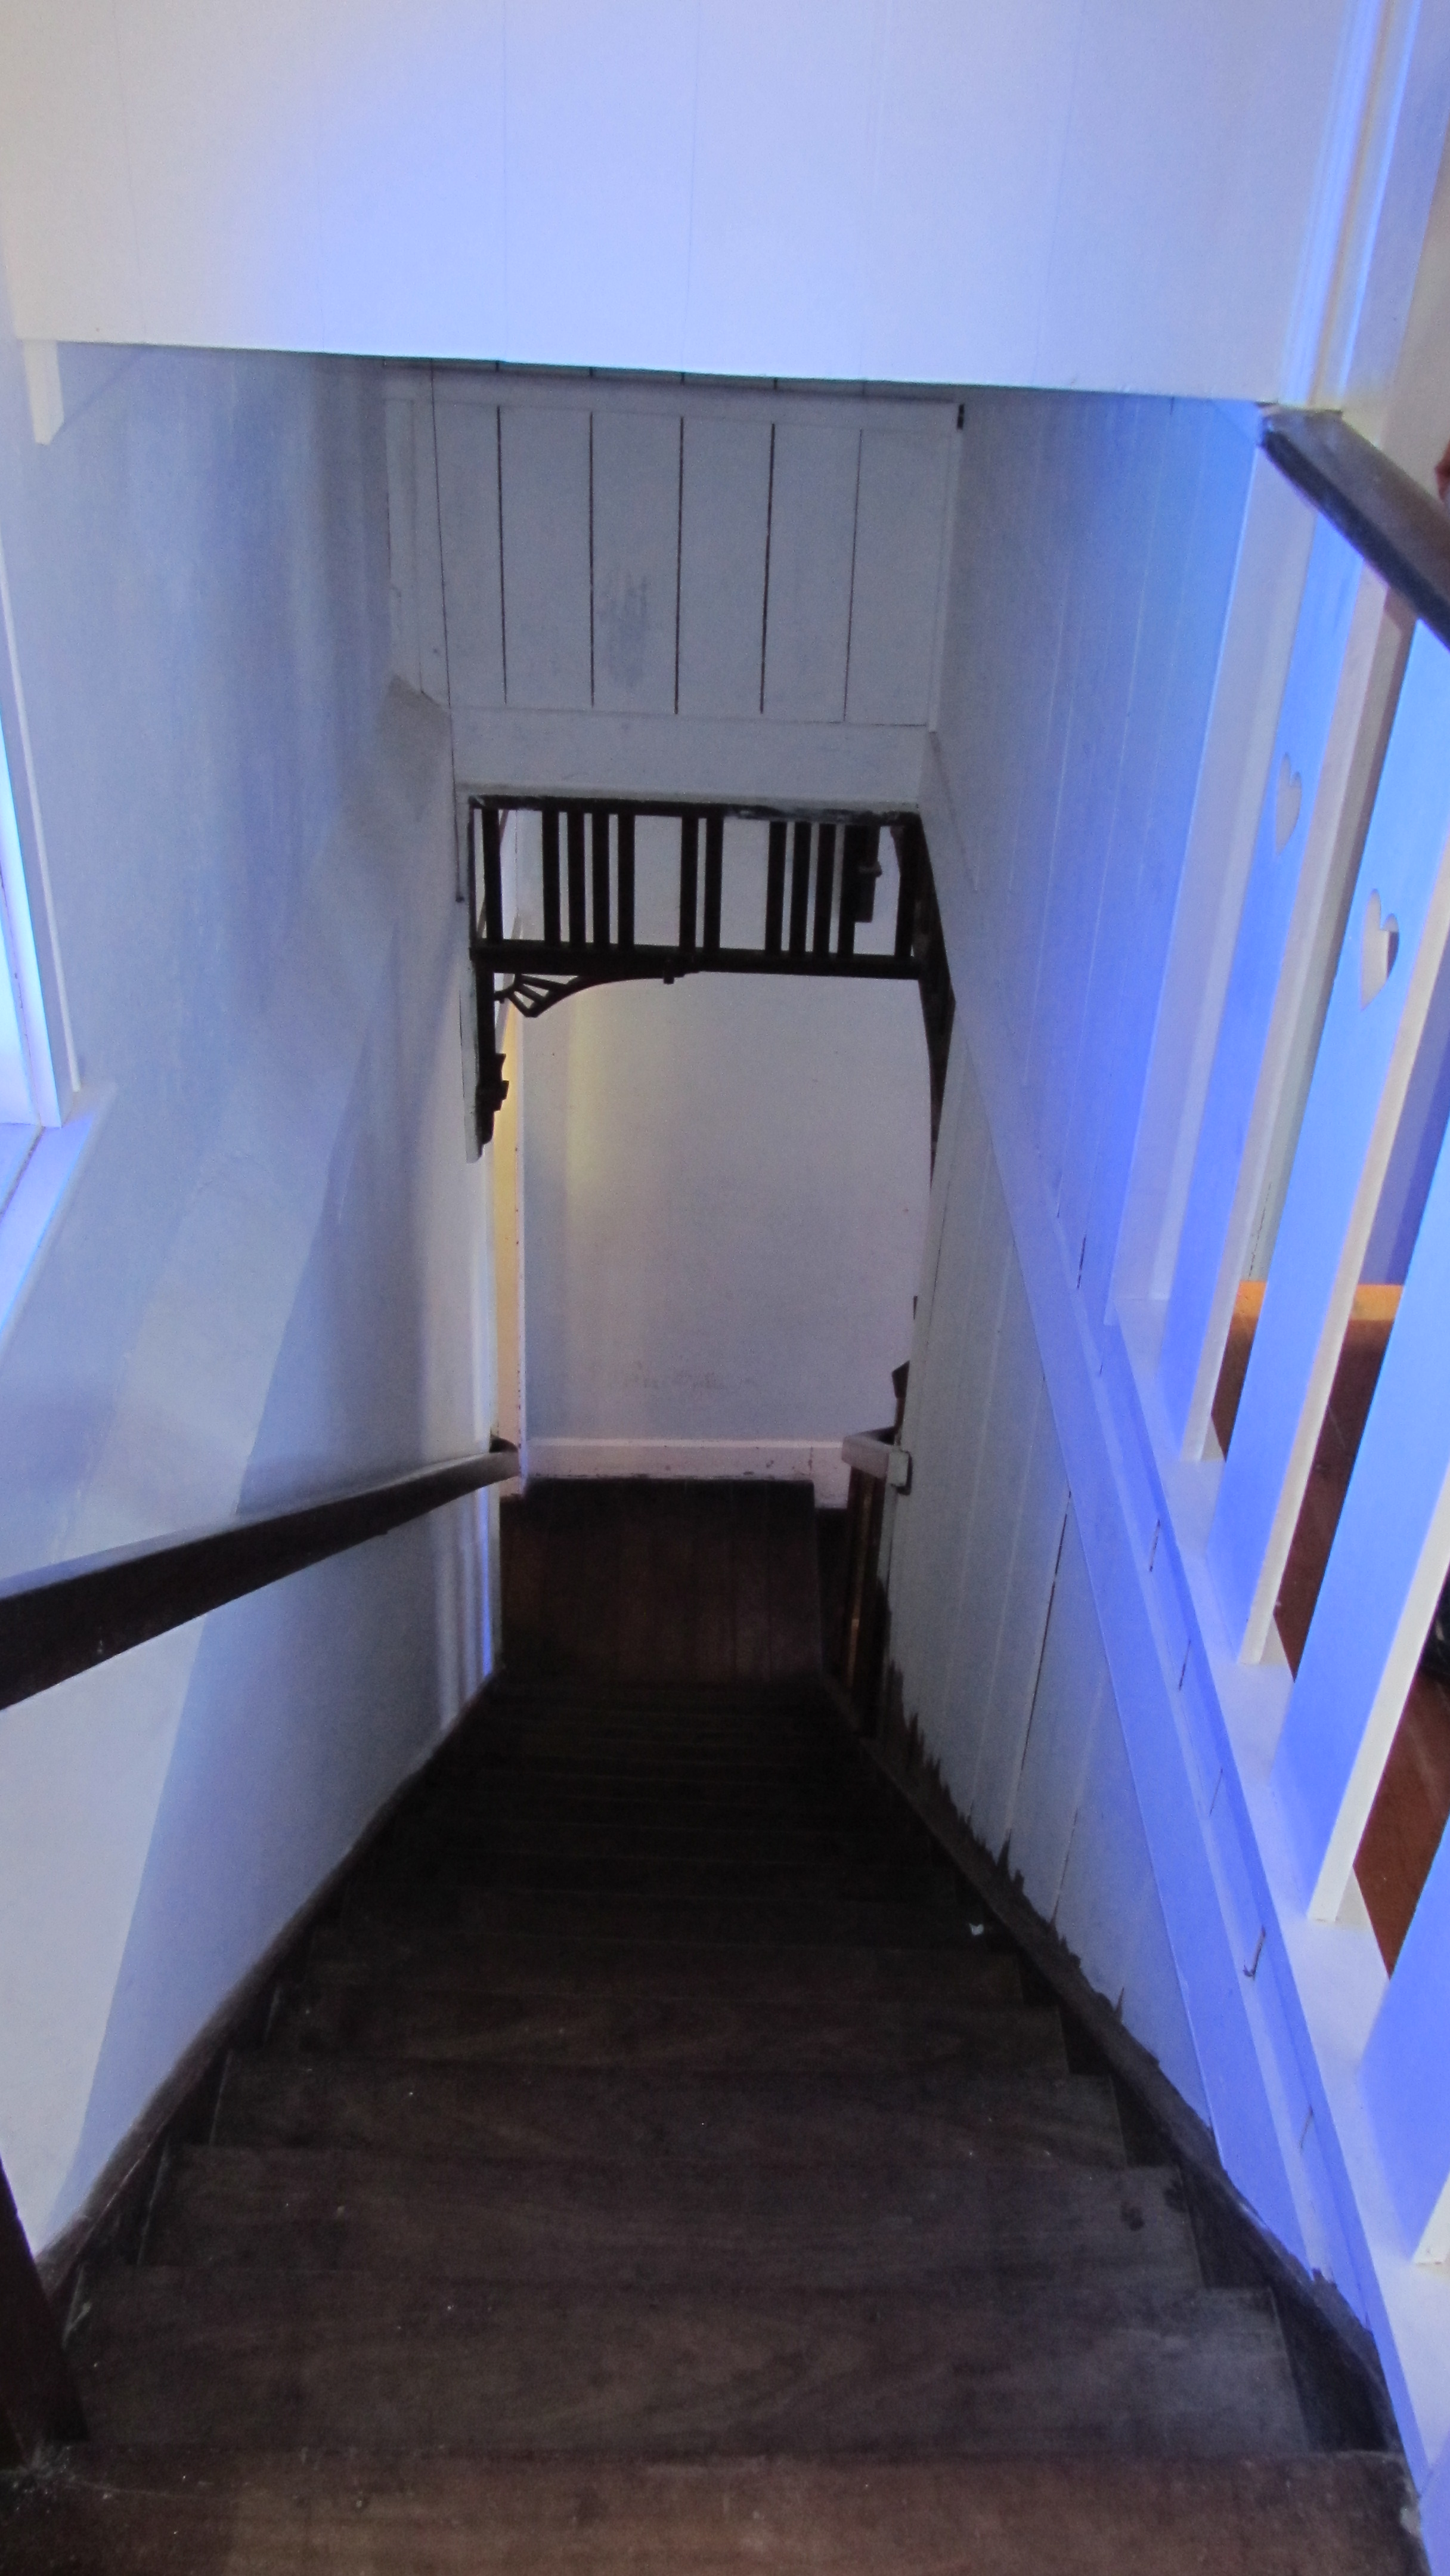 Interior staircase from upstairs